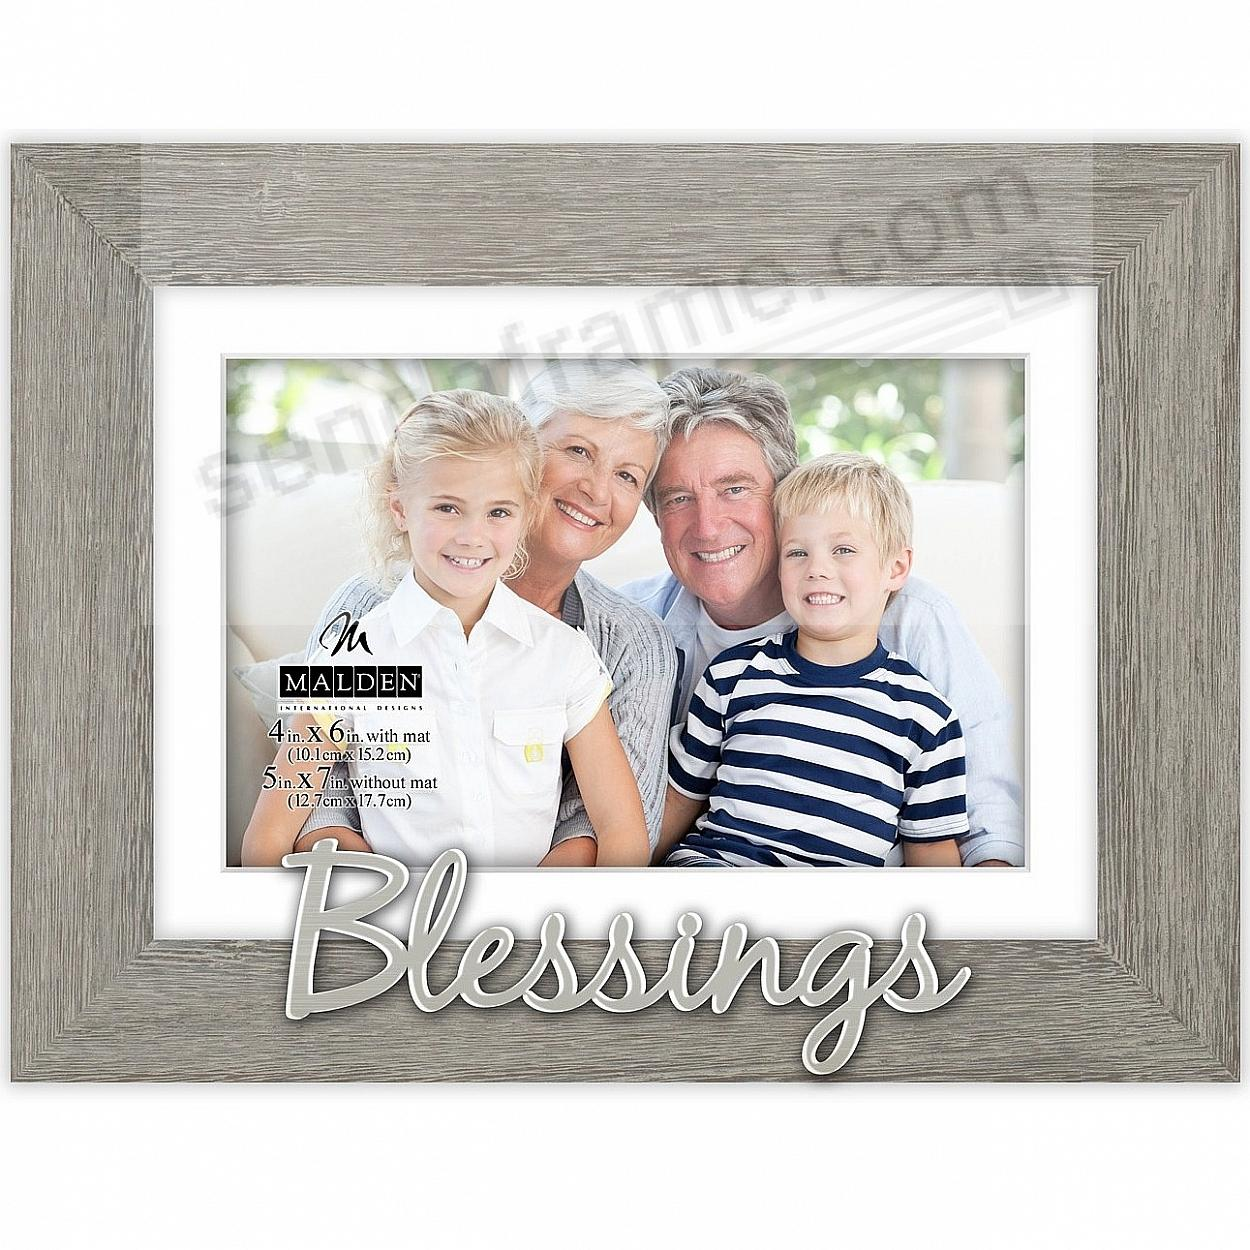 BLESSINGS - A special Expressions frame 5x7/4x6